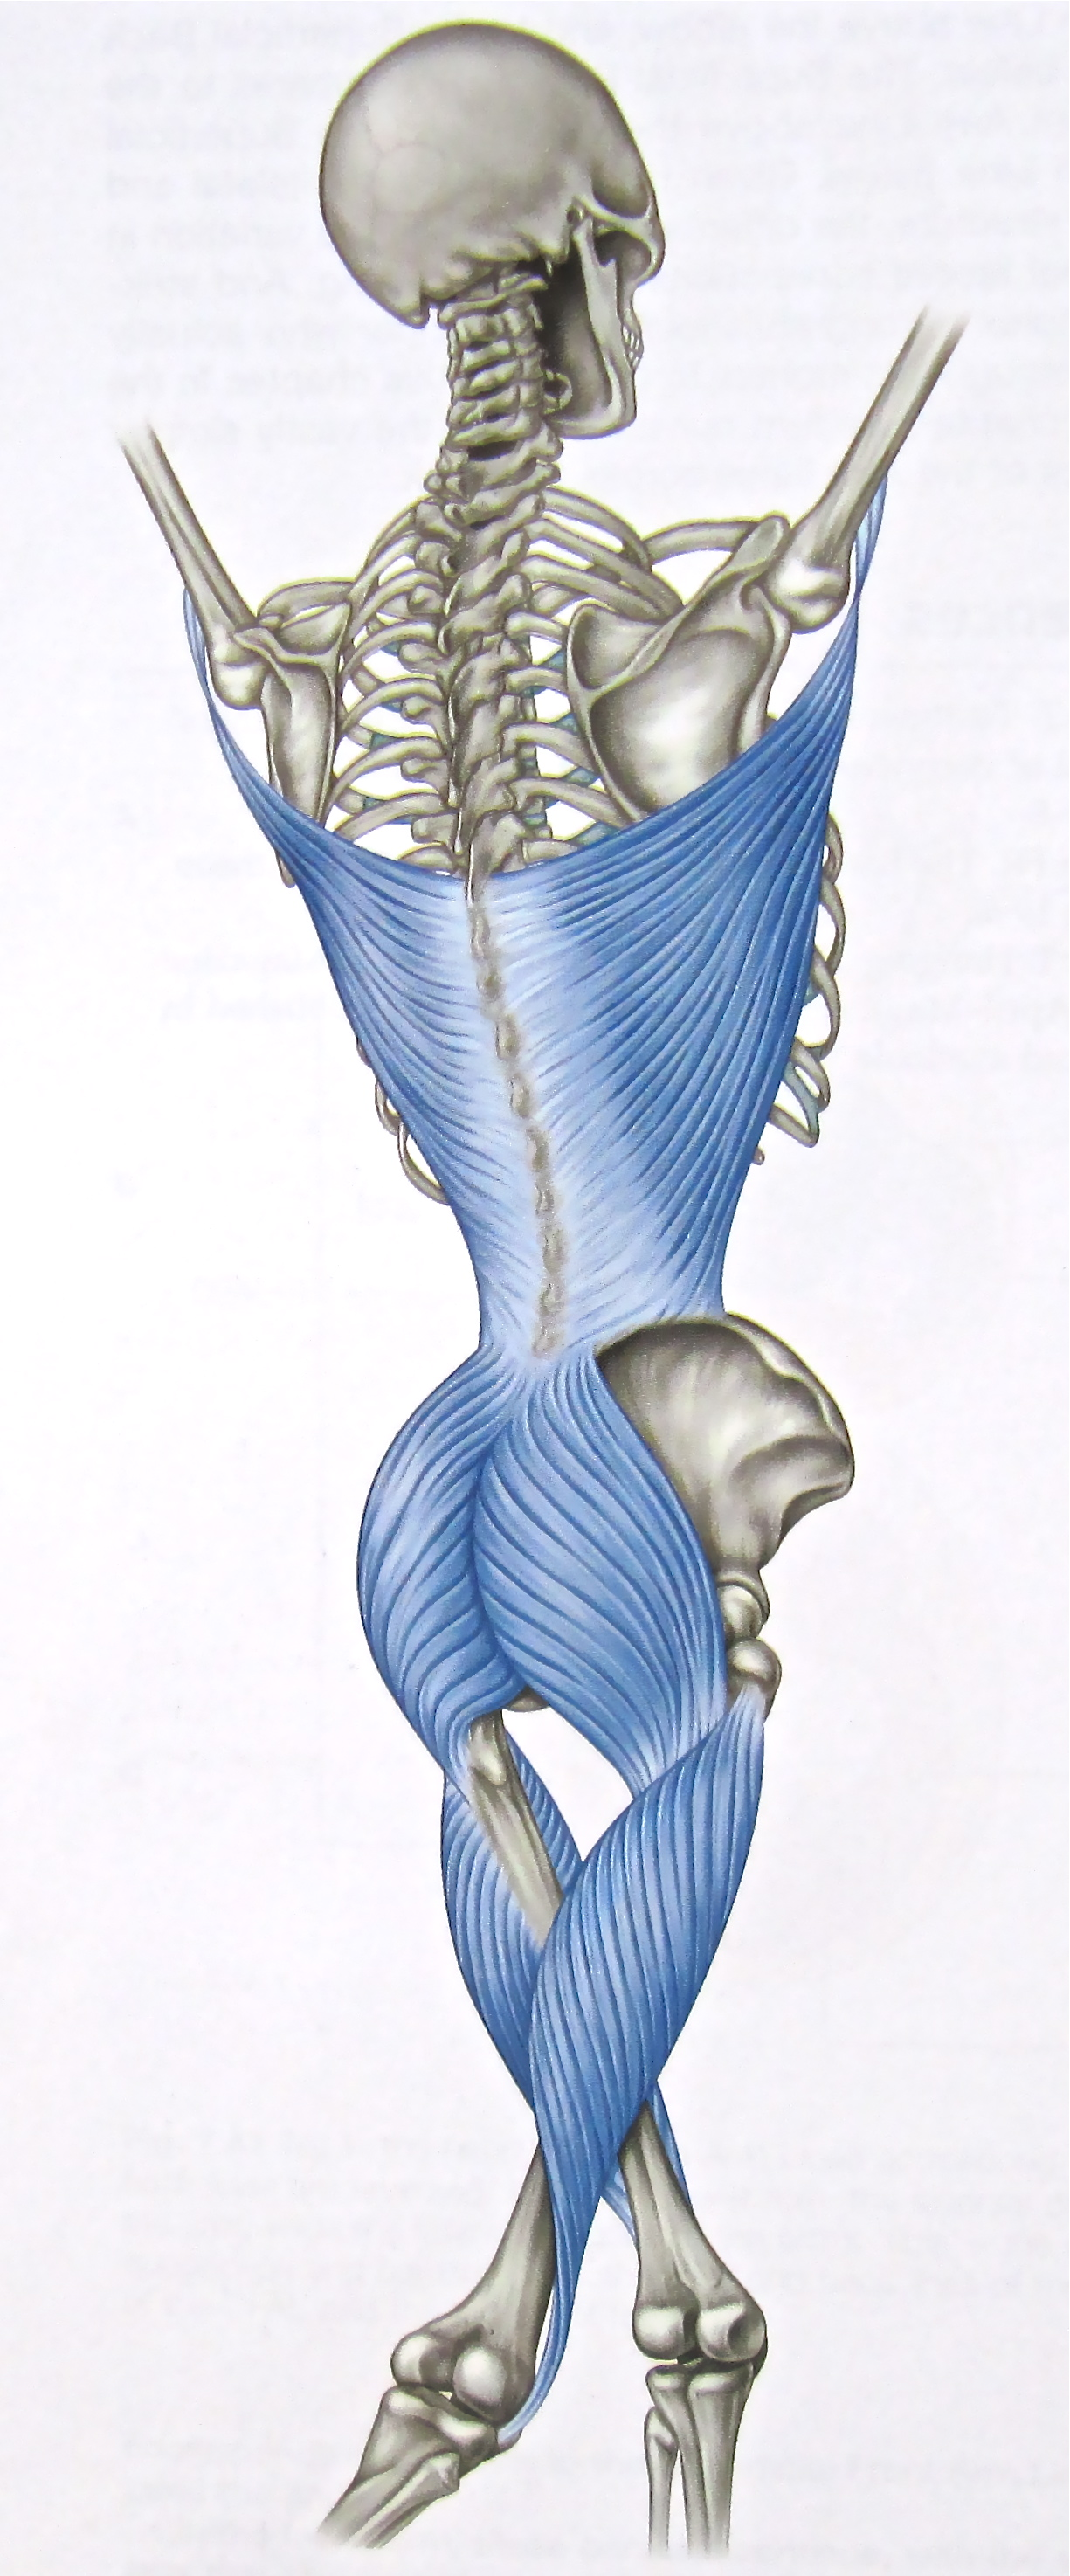 Notes on Anatomy and Physiology: The Thoracolumbar Fascia